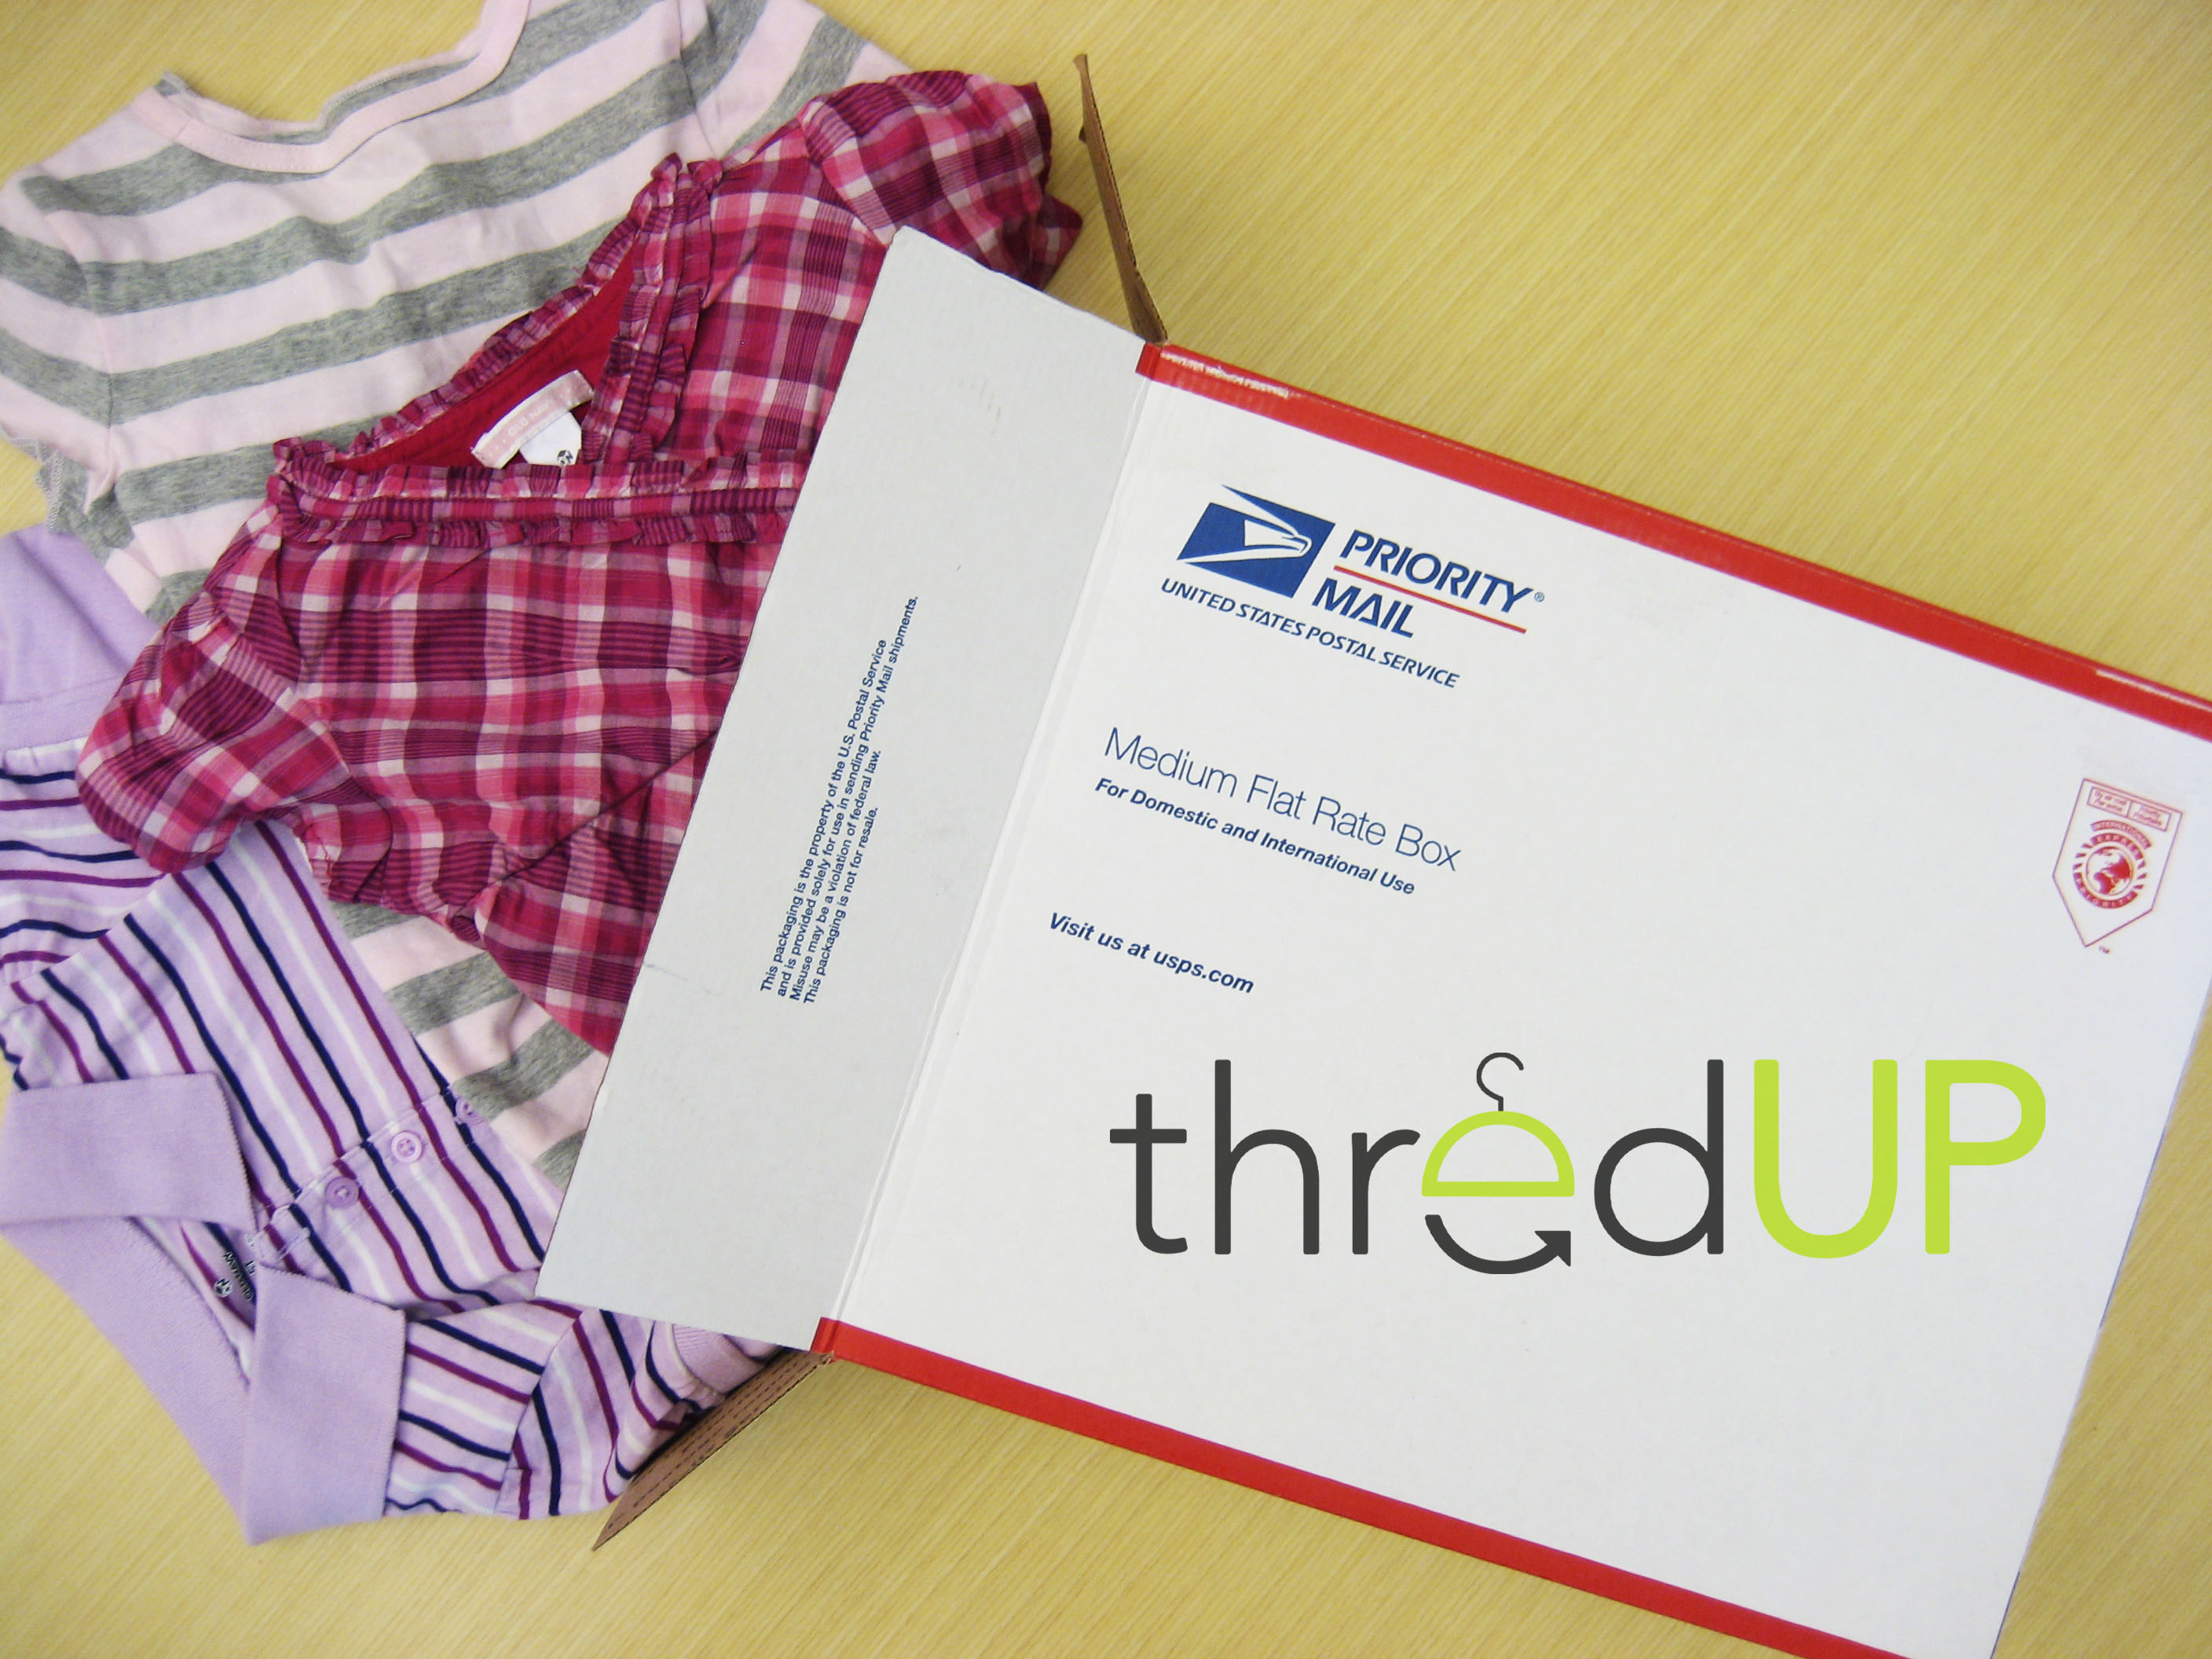 ThredUp: finding gently used clothing just got easier!